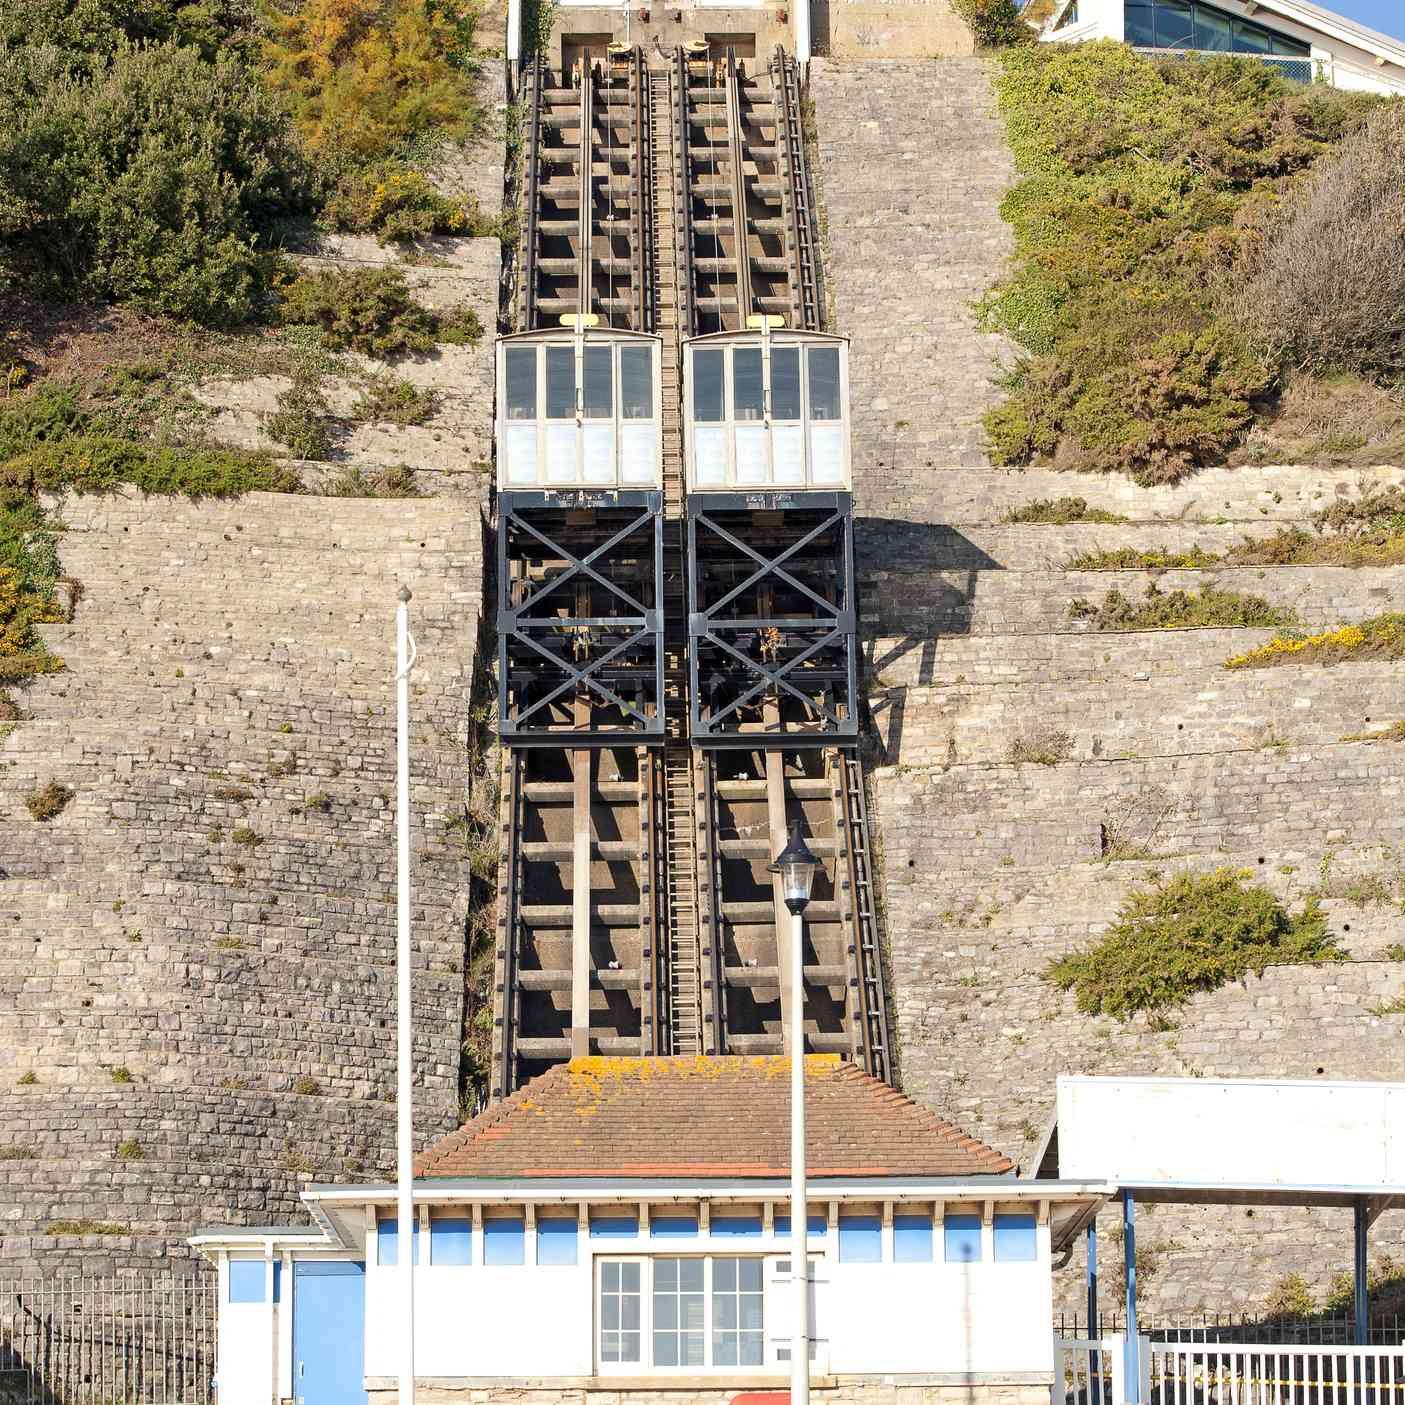 Empty Cliff Lift at onset of winter in Dorset during November